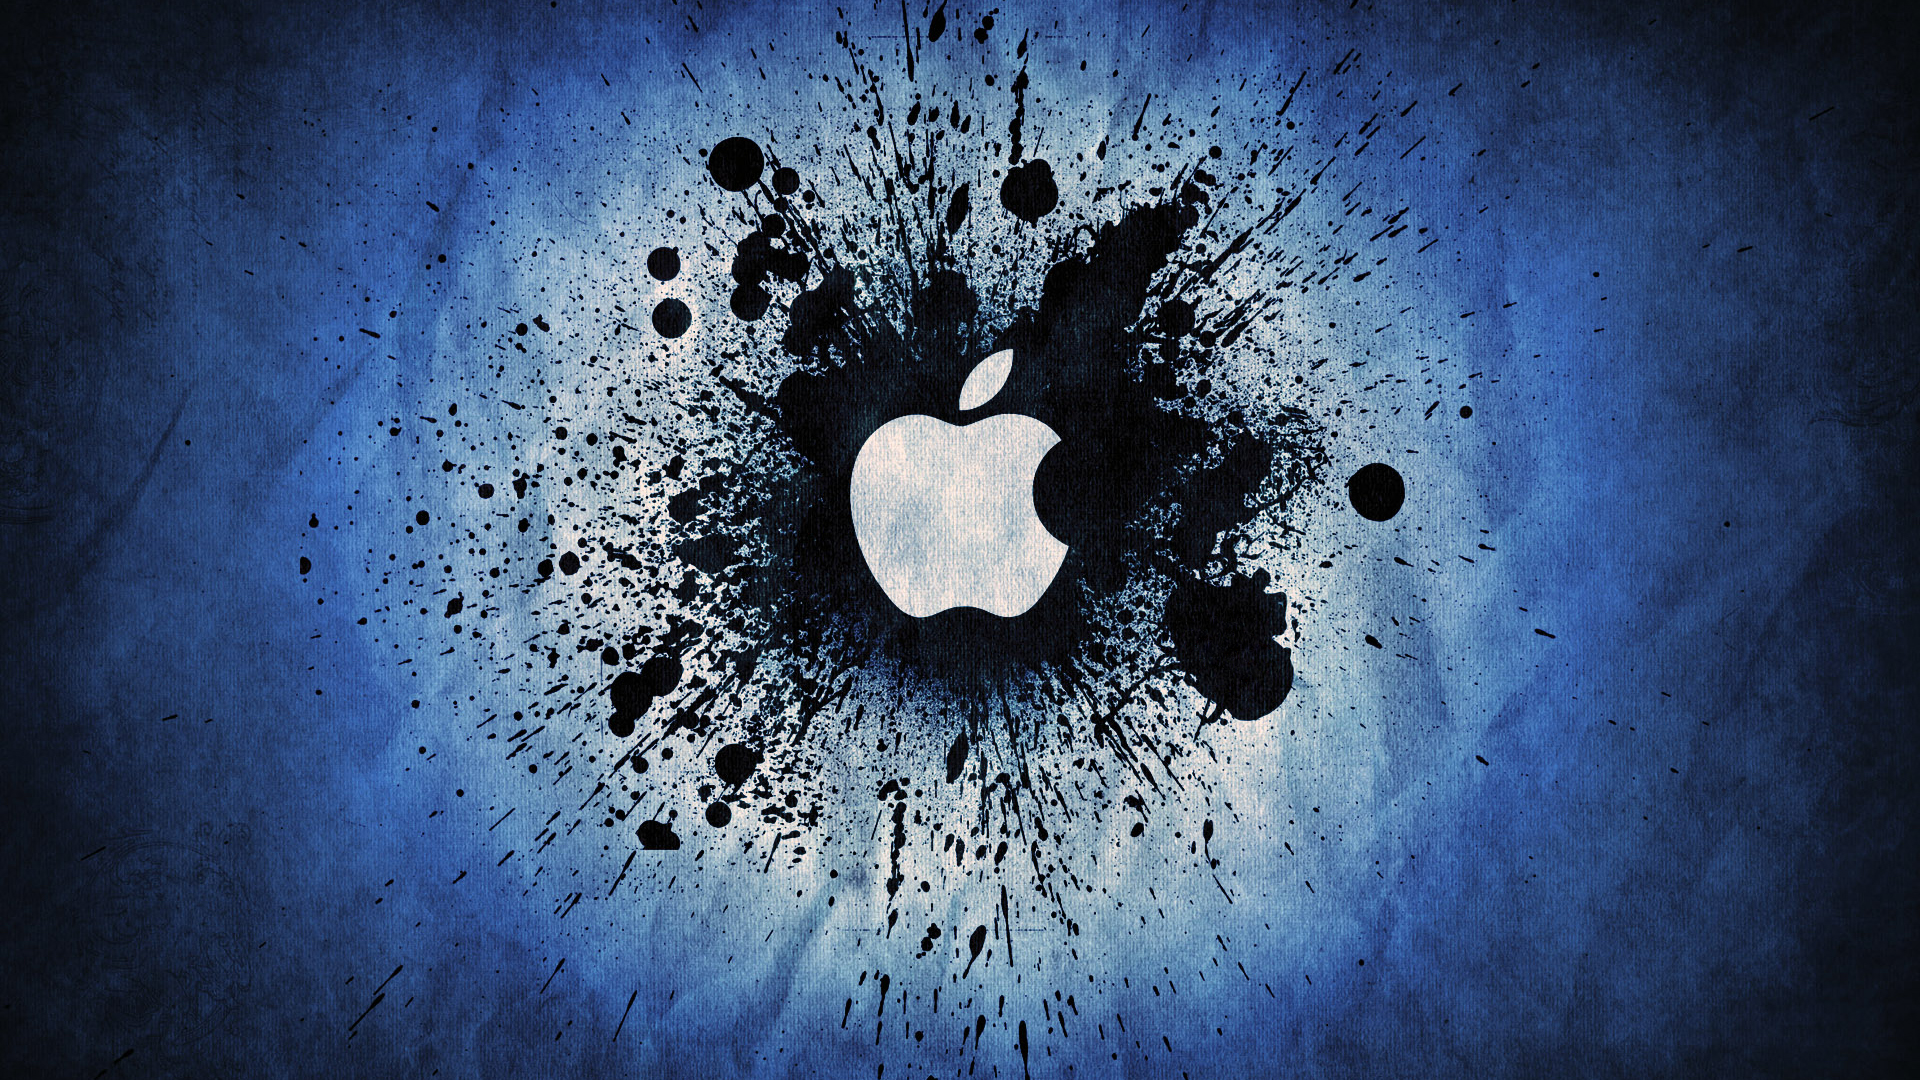 Apple Black Abstract Hd Desktop